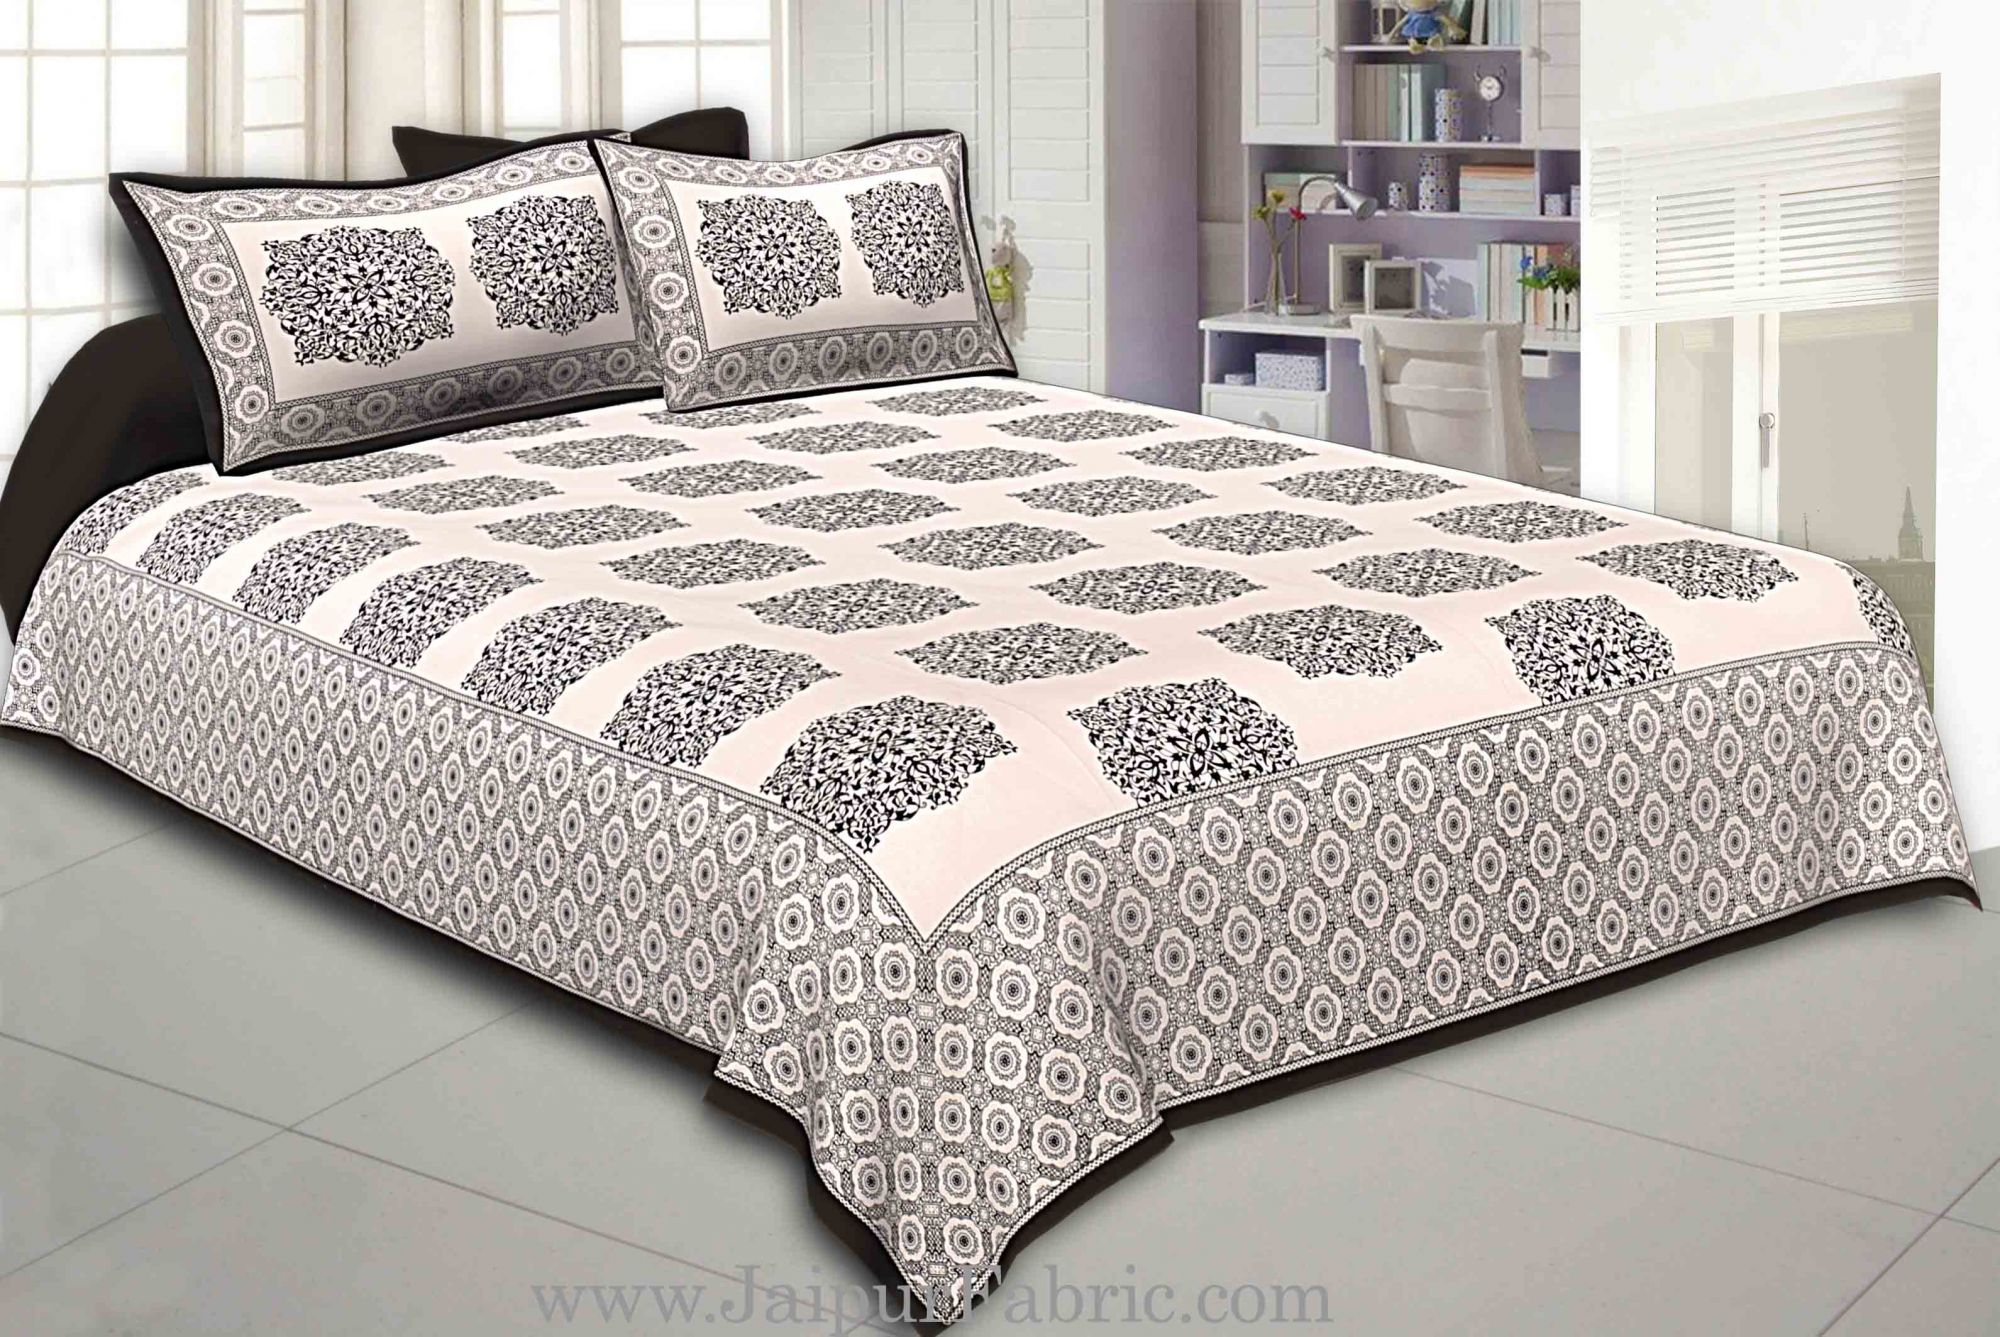 Black Border With big Boota Super fine cotton Double bedsheet